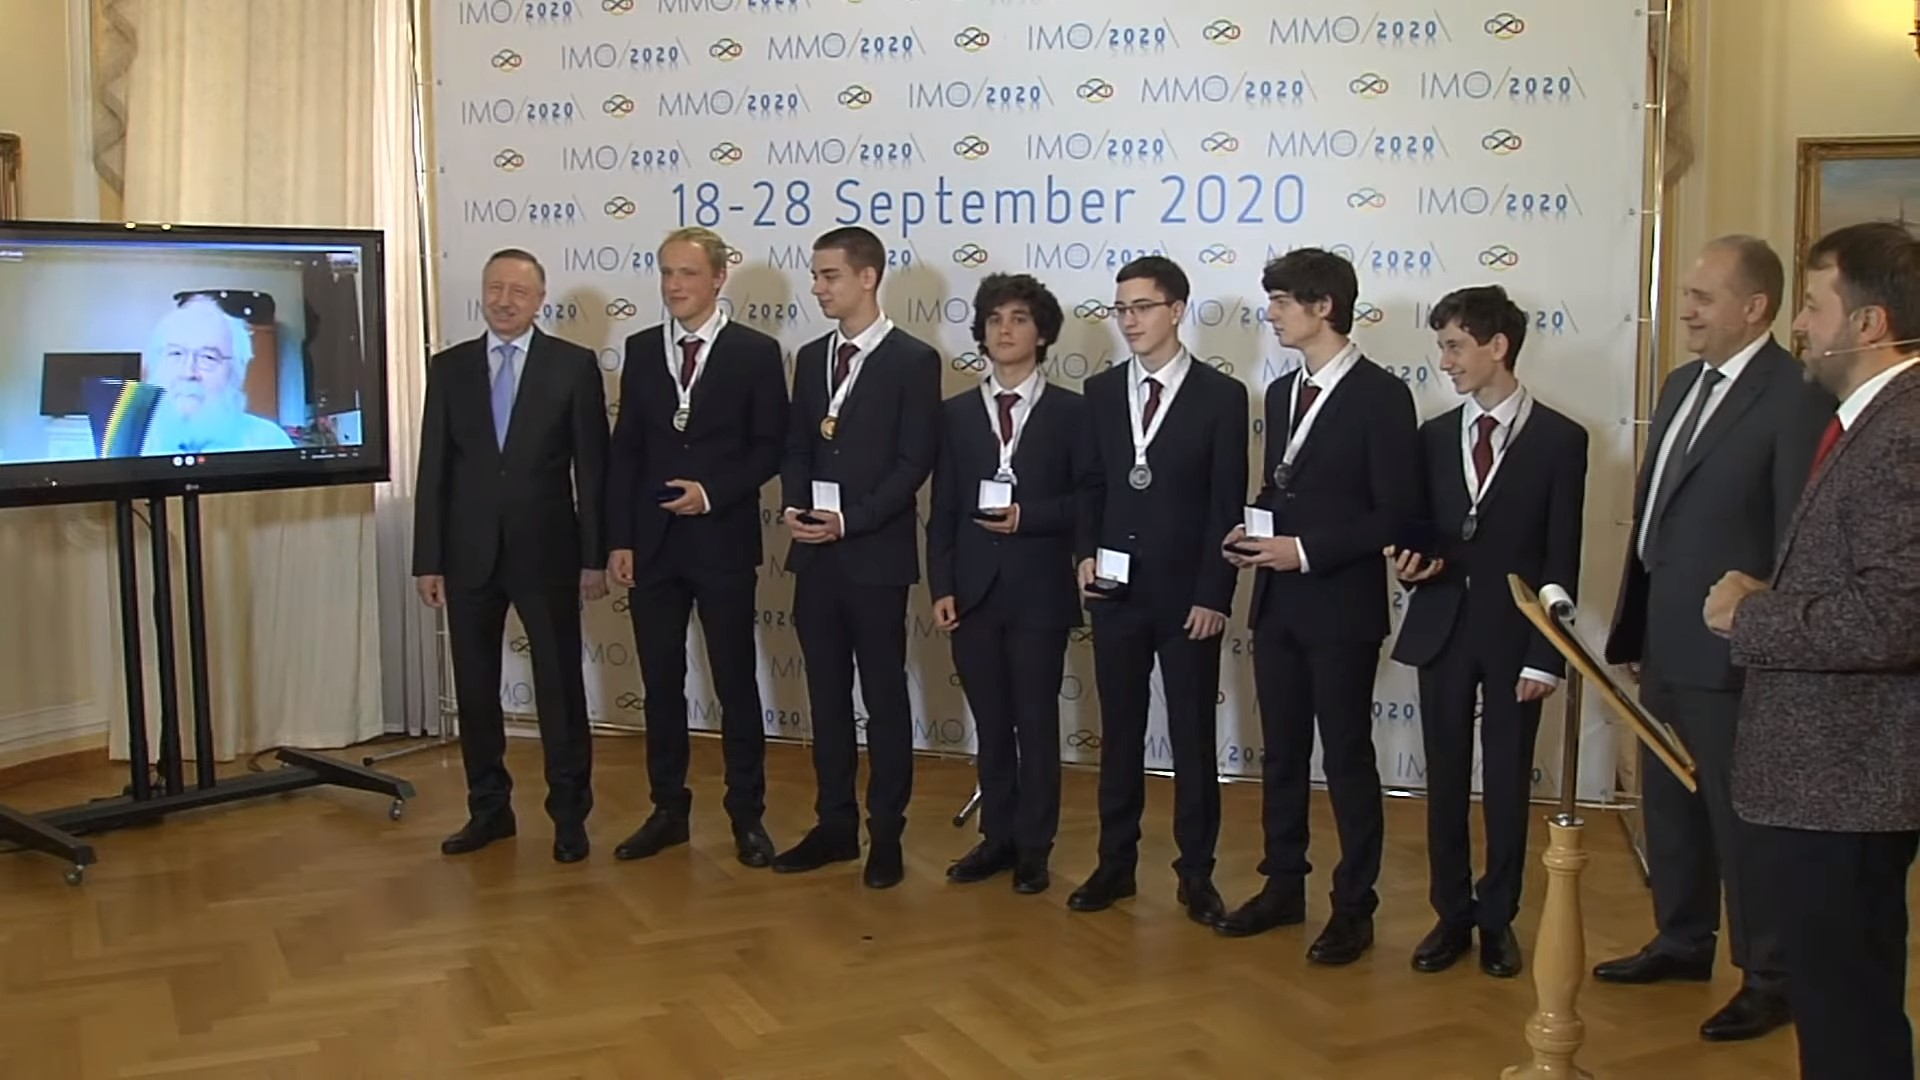 The 62nd International Mathematical Olympiad 2021 will be held in Saint Petersburg